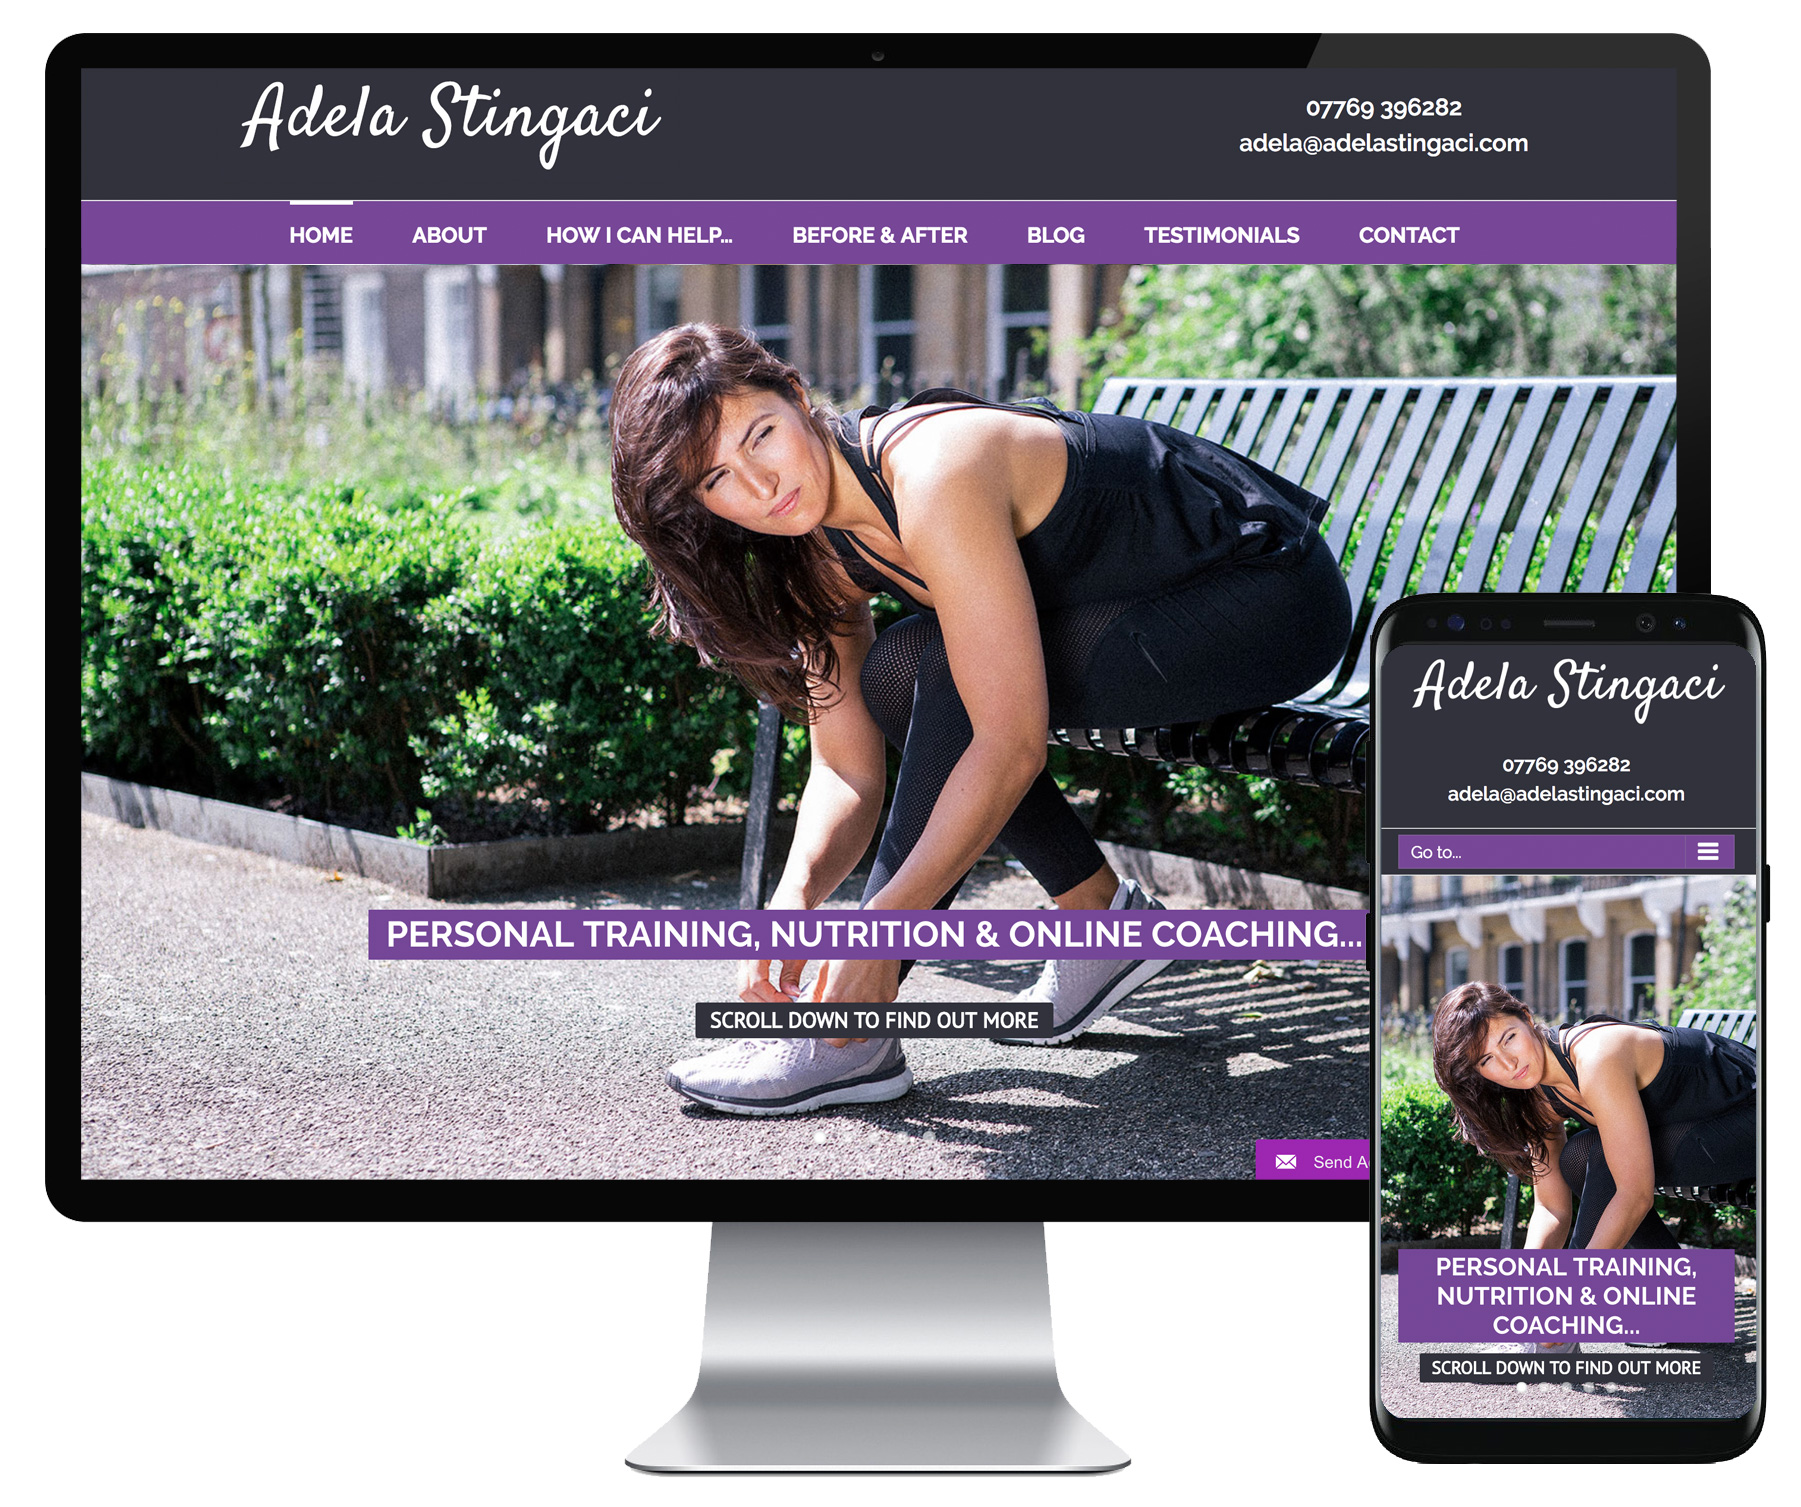 Adela Stingaci website